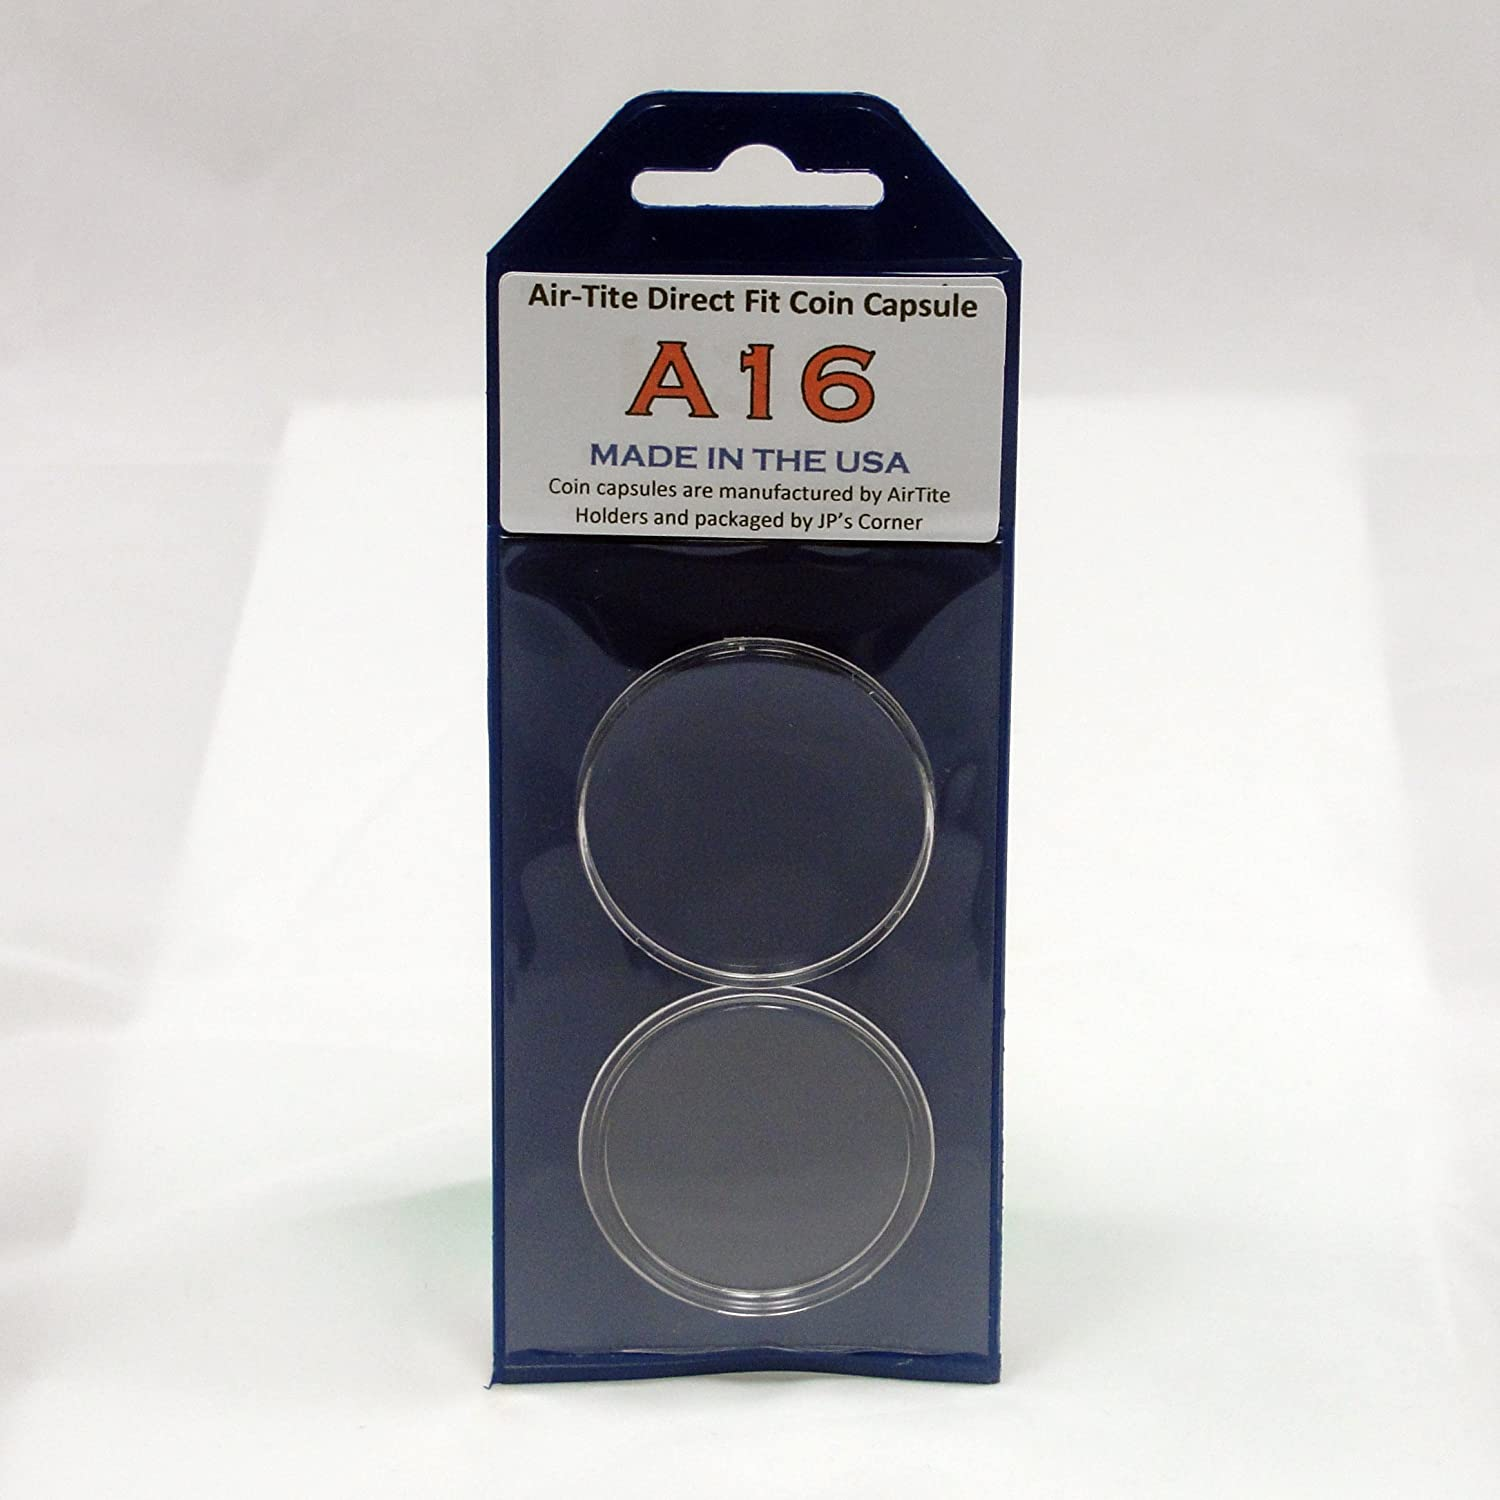 (5) Air-Tite Direct Fit Coin Capsule A16 for U.S. 1/10th oz. Gold Eagles in JP's Retail Packaging